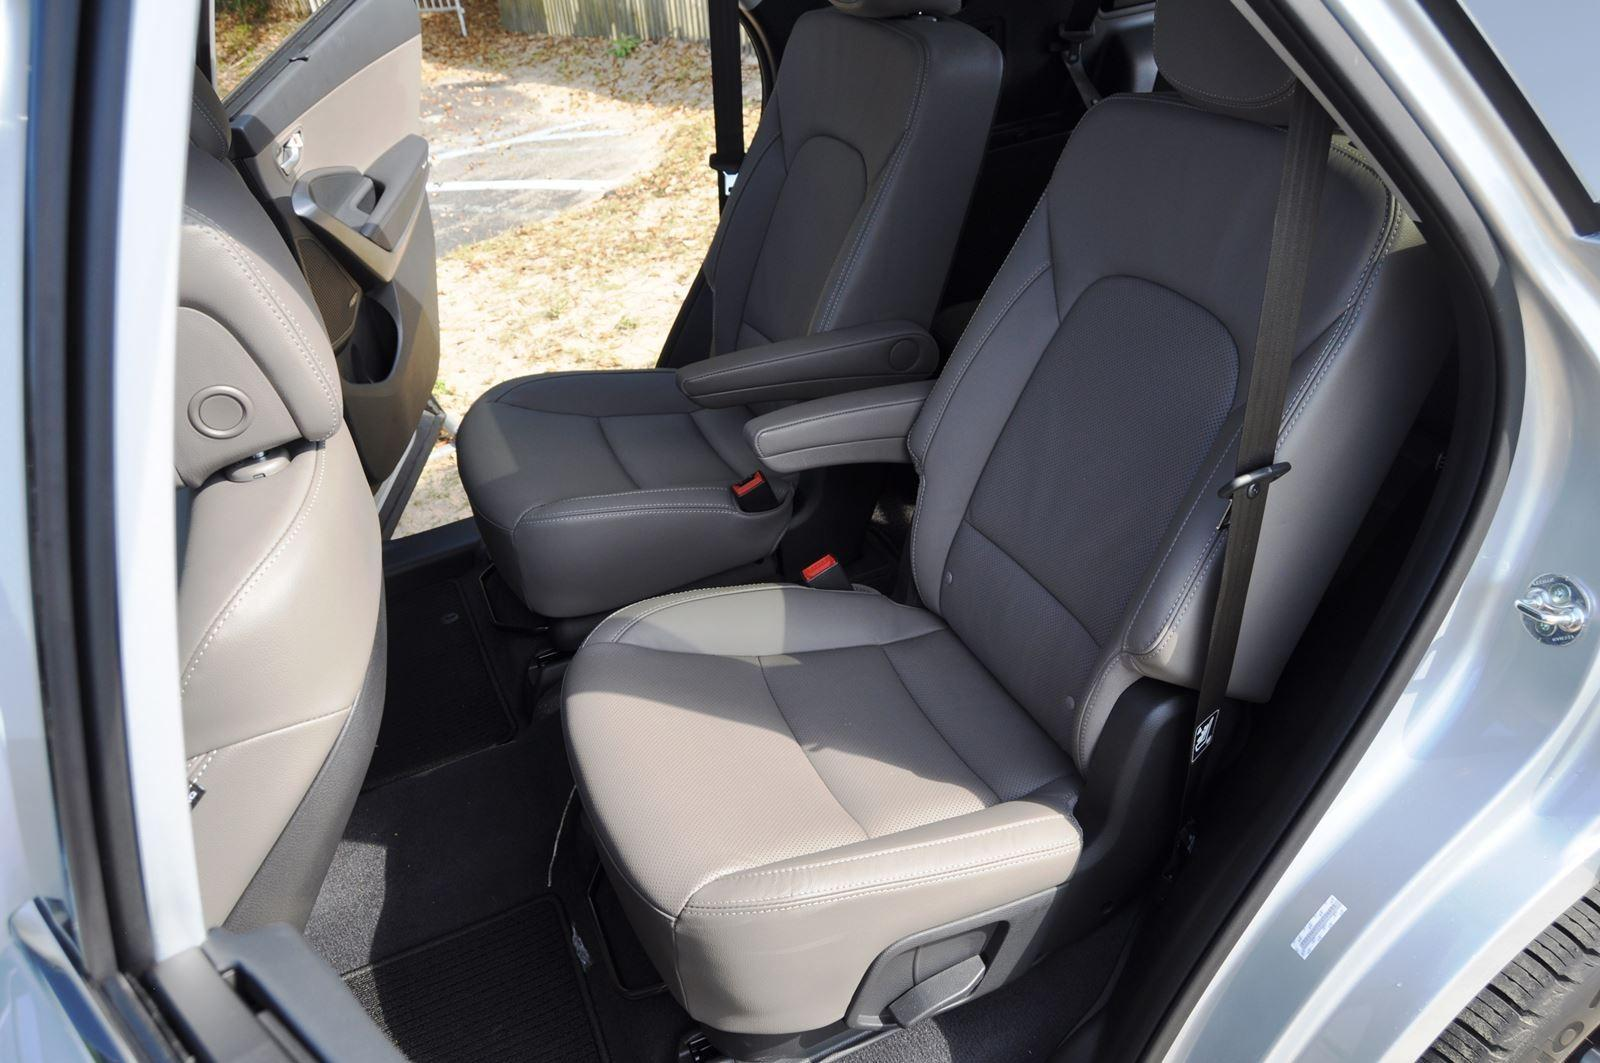 2015 Hyundai Santa Fe LWB Ultimate - Interior Photos 2